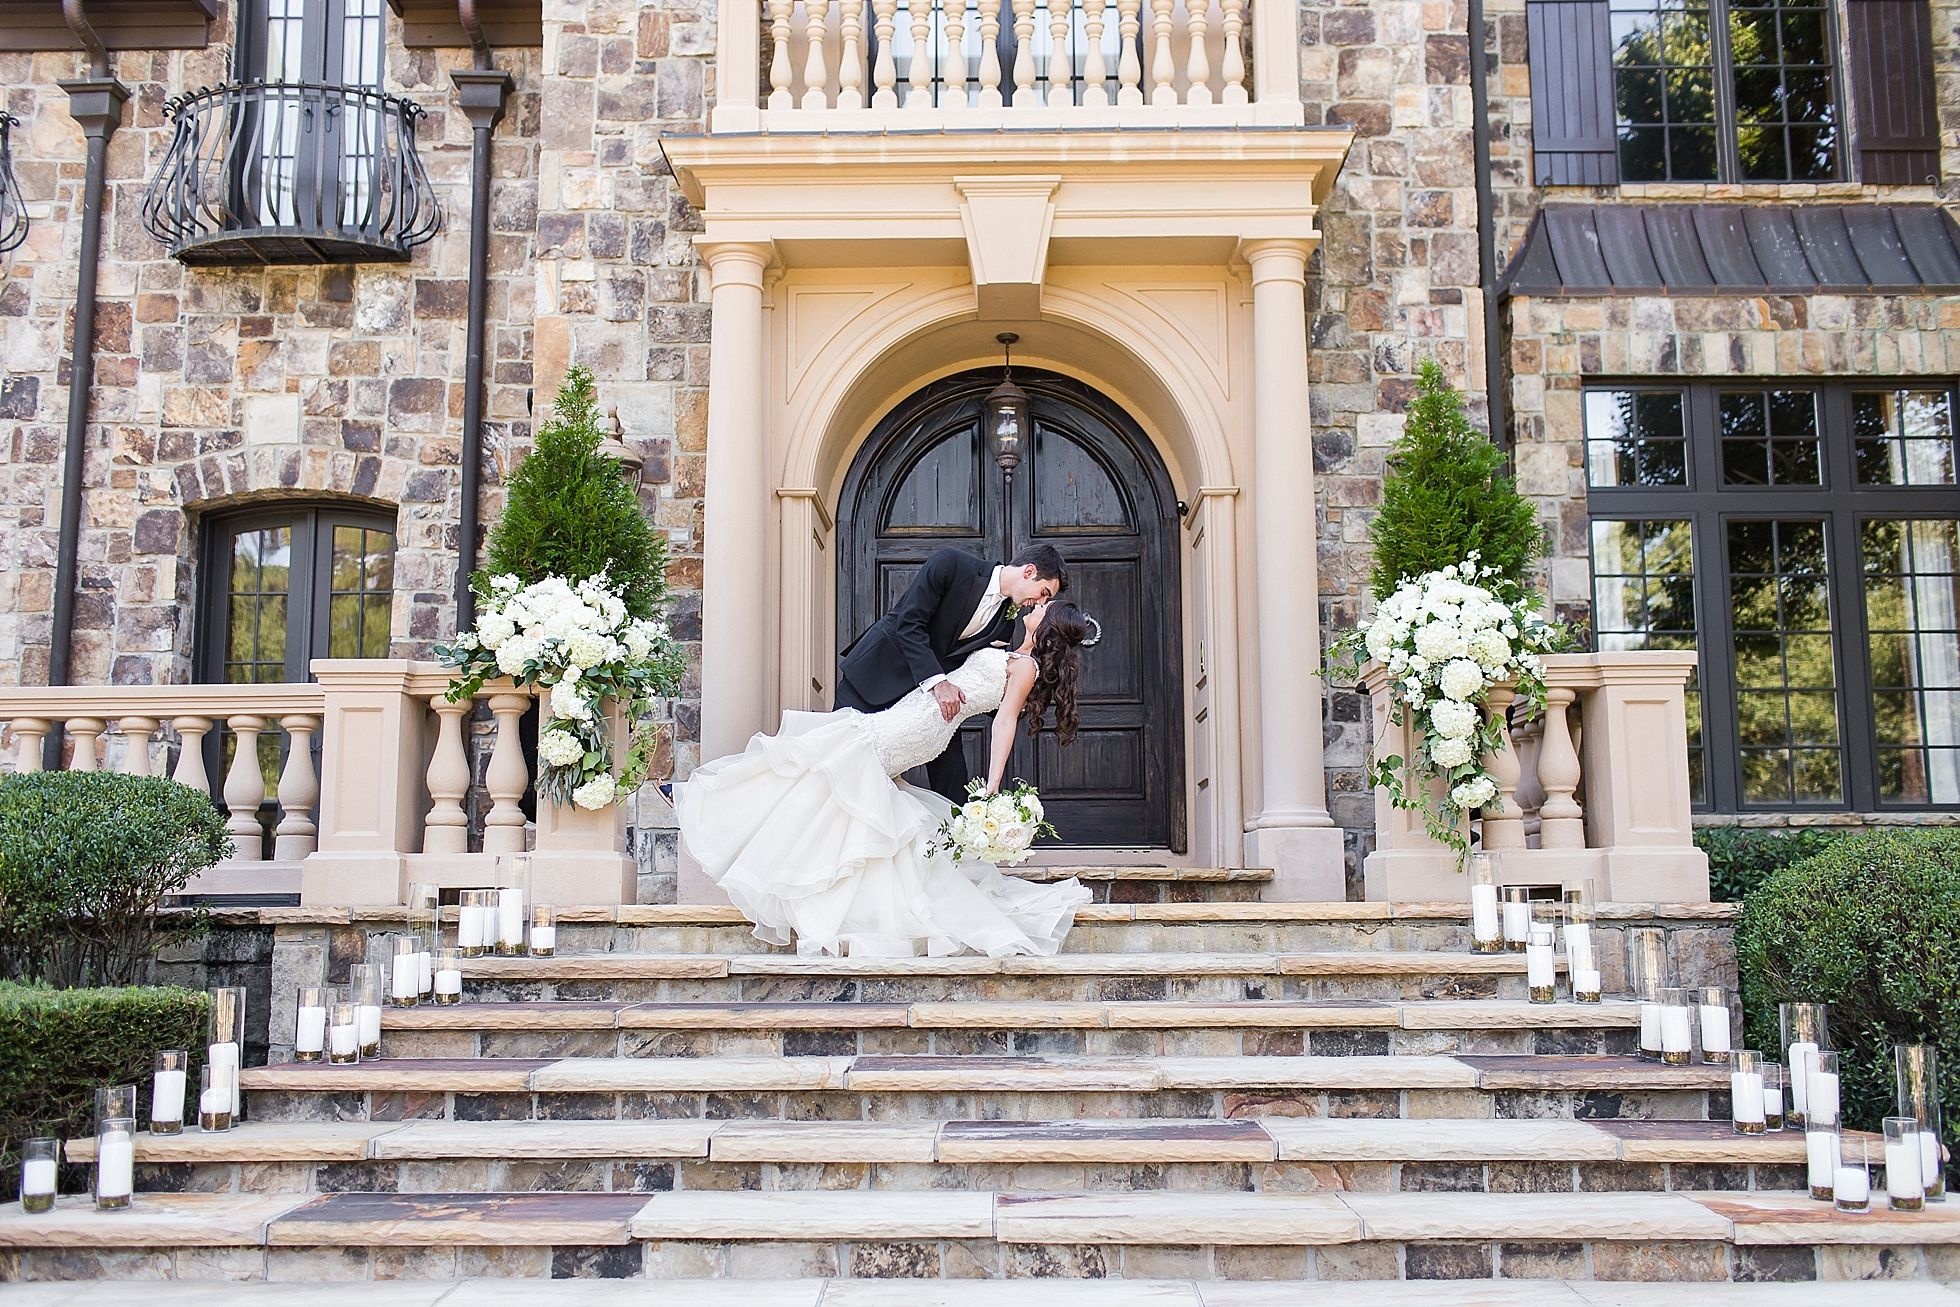 Castle Like Mansion Wedding Venue In Georgia So Obsessed Mansion Wedding Venues Wedding Venues Mansion Wedding